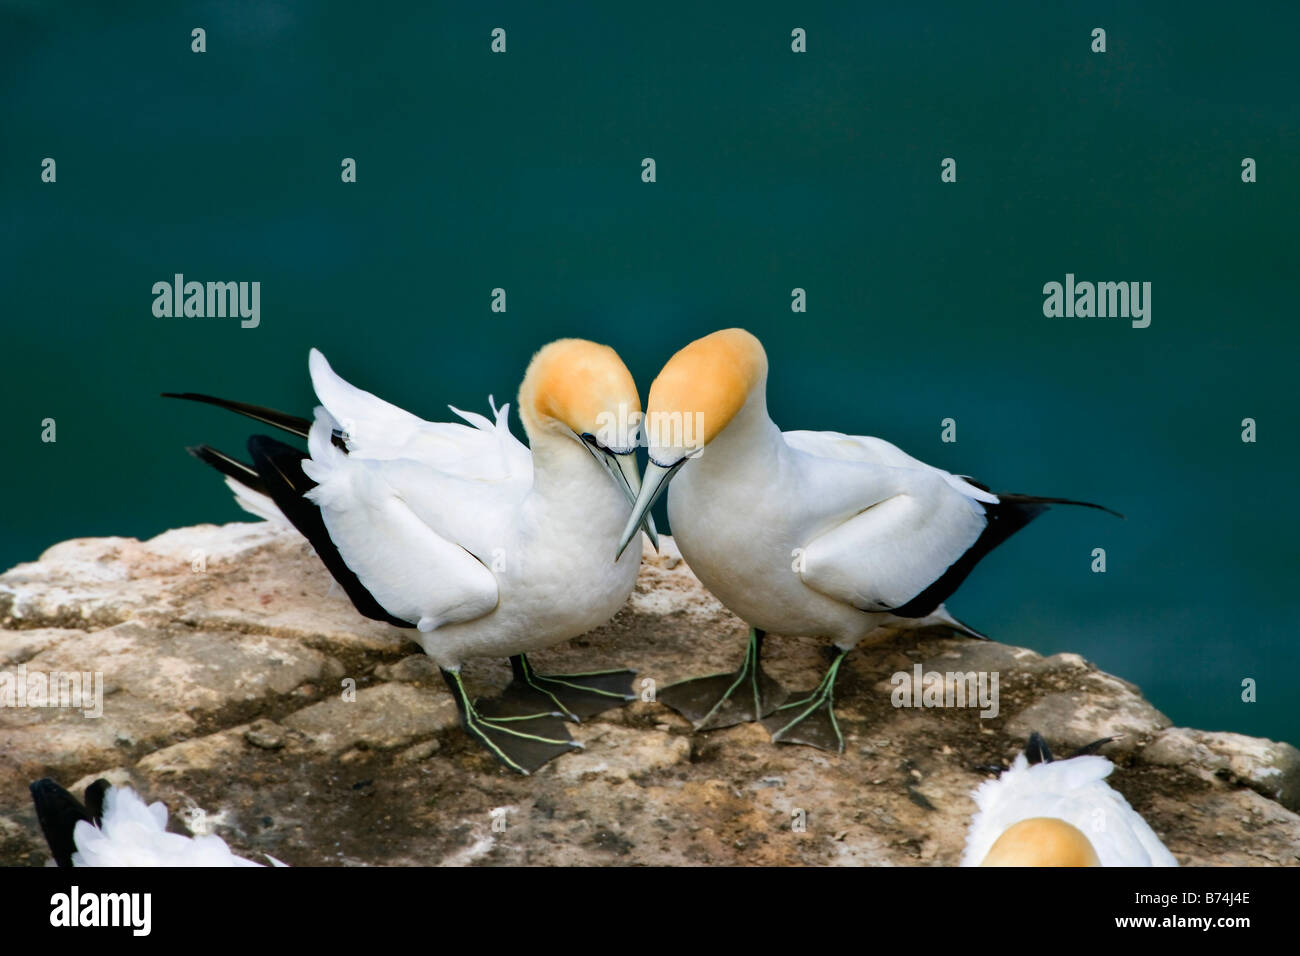 New Zealand, North Island, Murawai Gannet Colony, Australasian gannet ( Morus Serrator ). - Stock Image